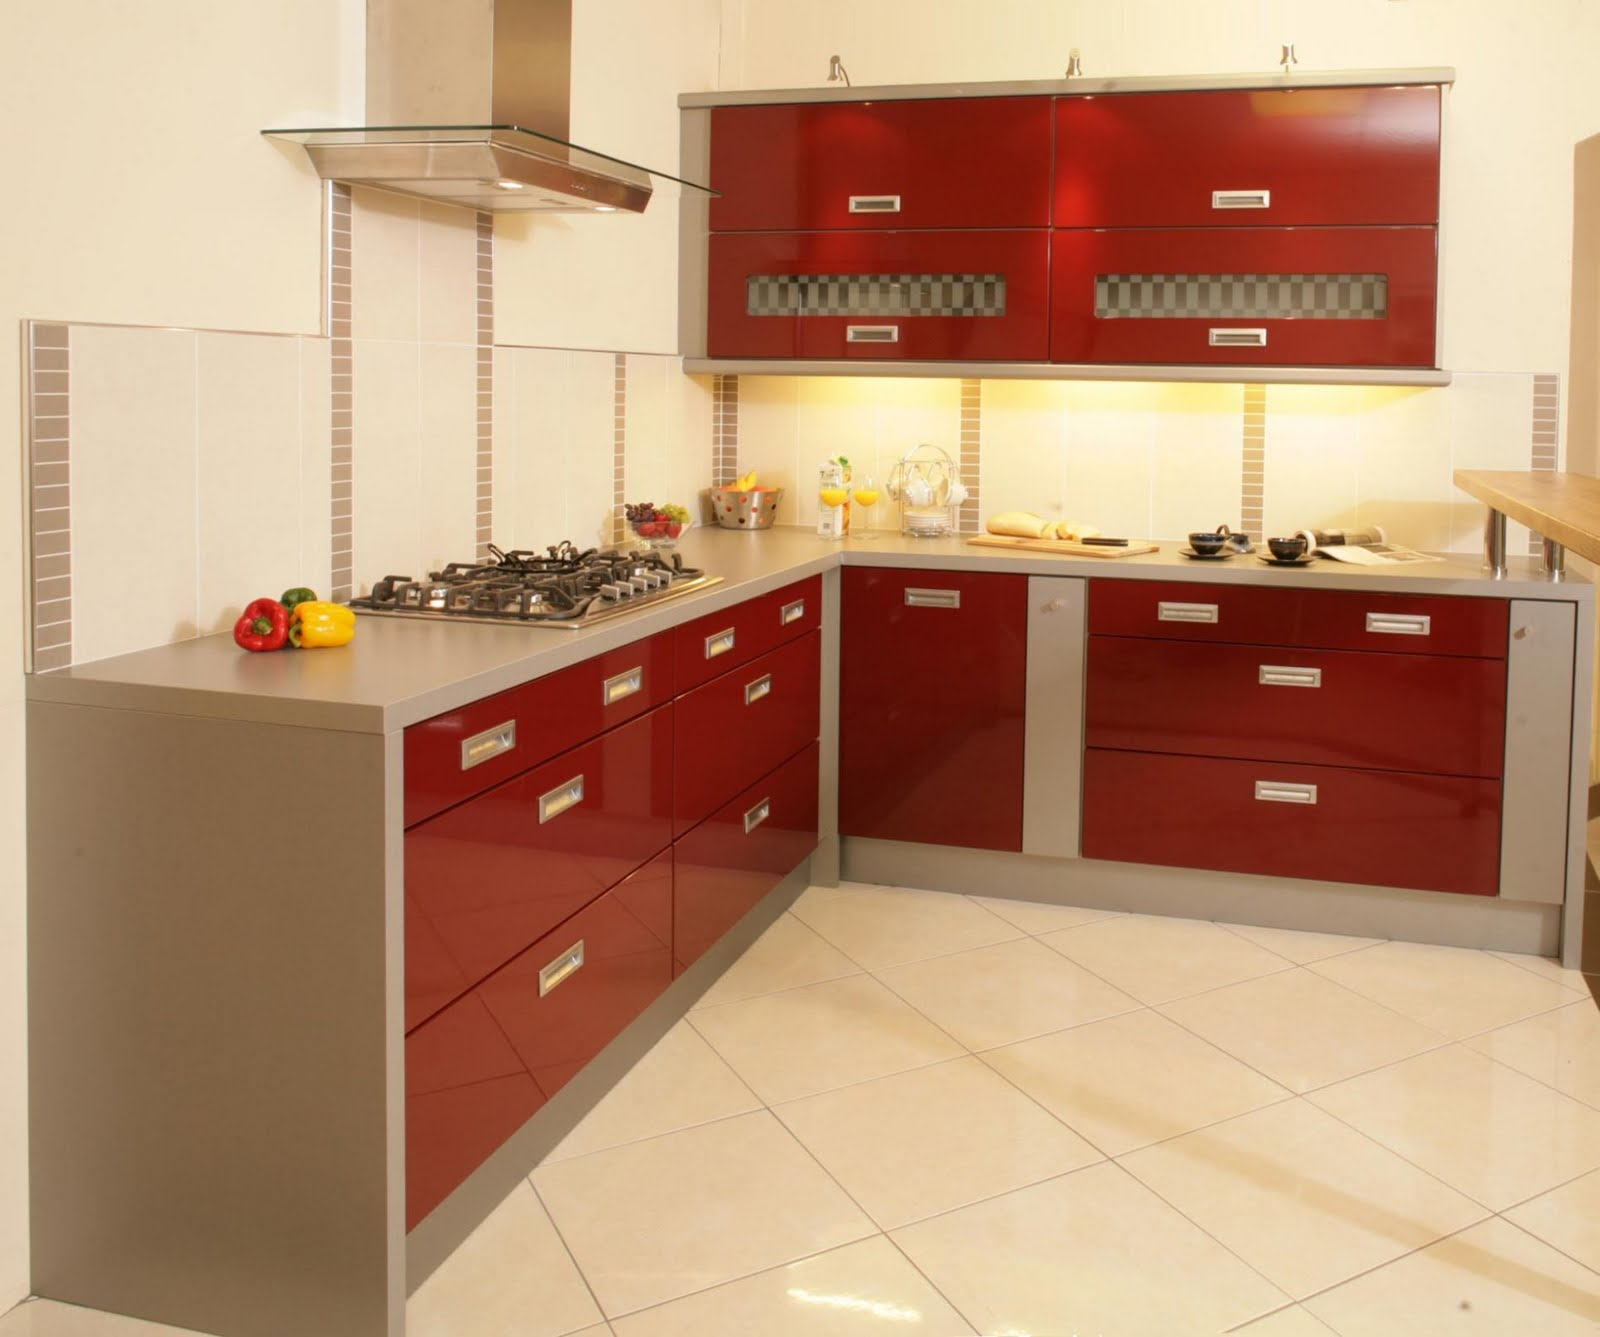 Pictures of Red Kitchen Cabinets | Best Kitchen Places